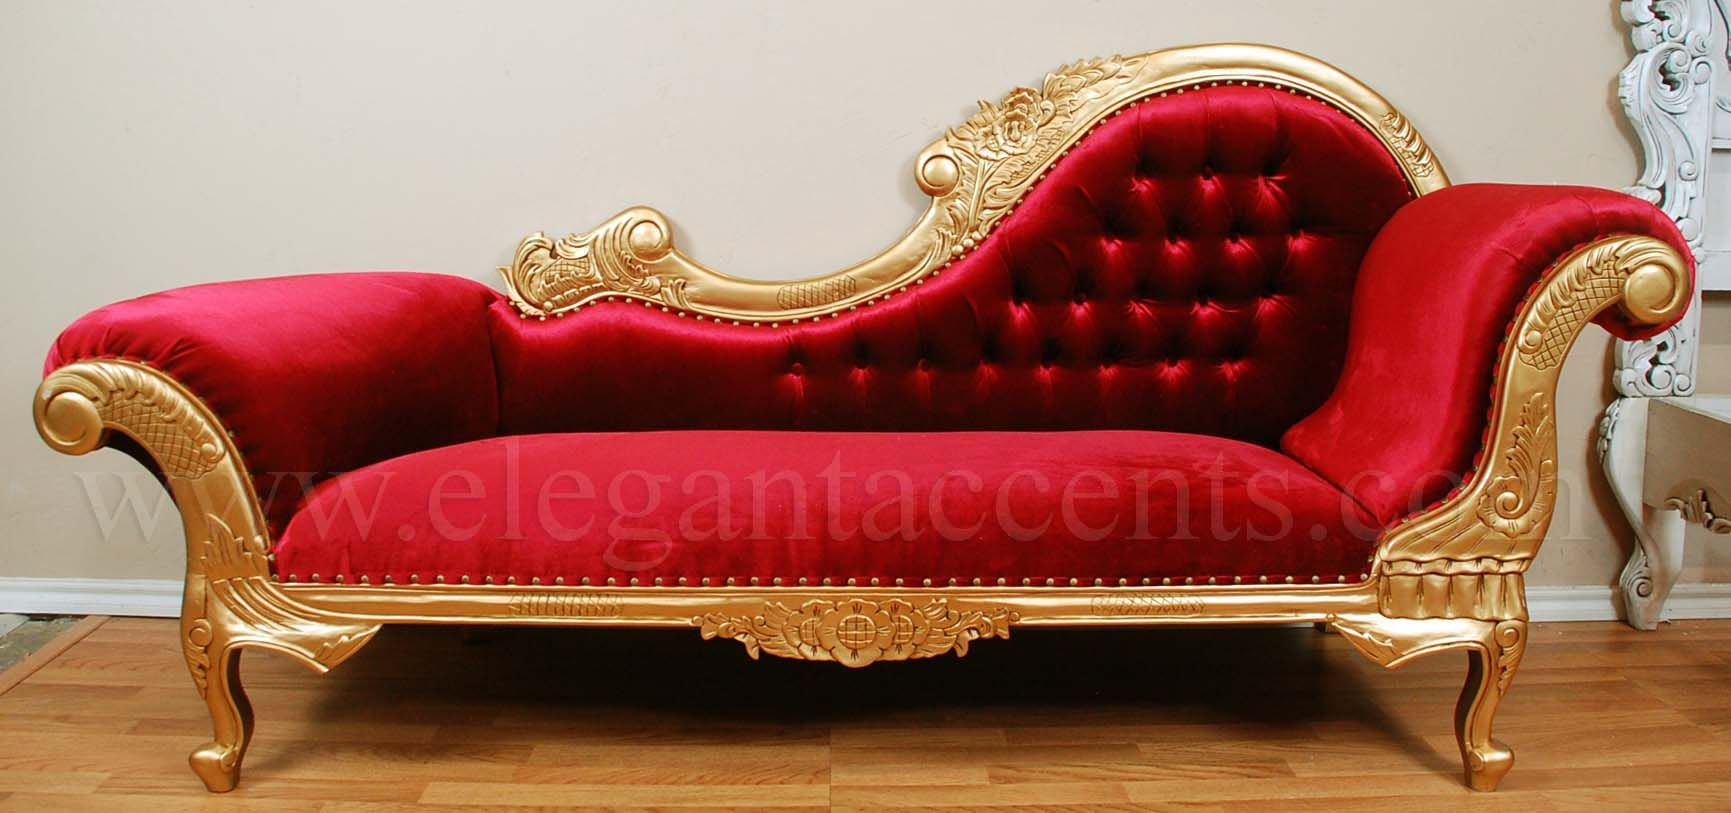 Victorian Chaise Gold Red Couch With Chaise Living Room Sofa Design Chaise Lounge